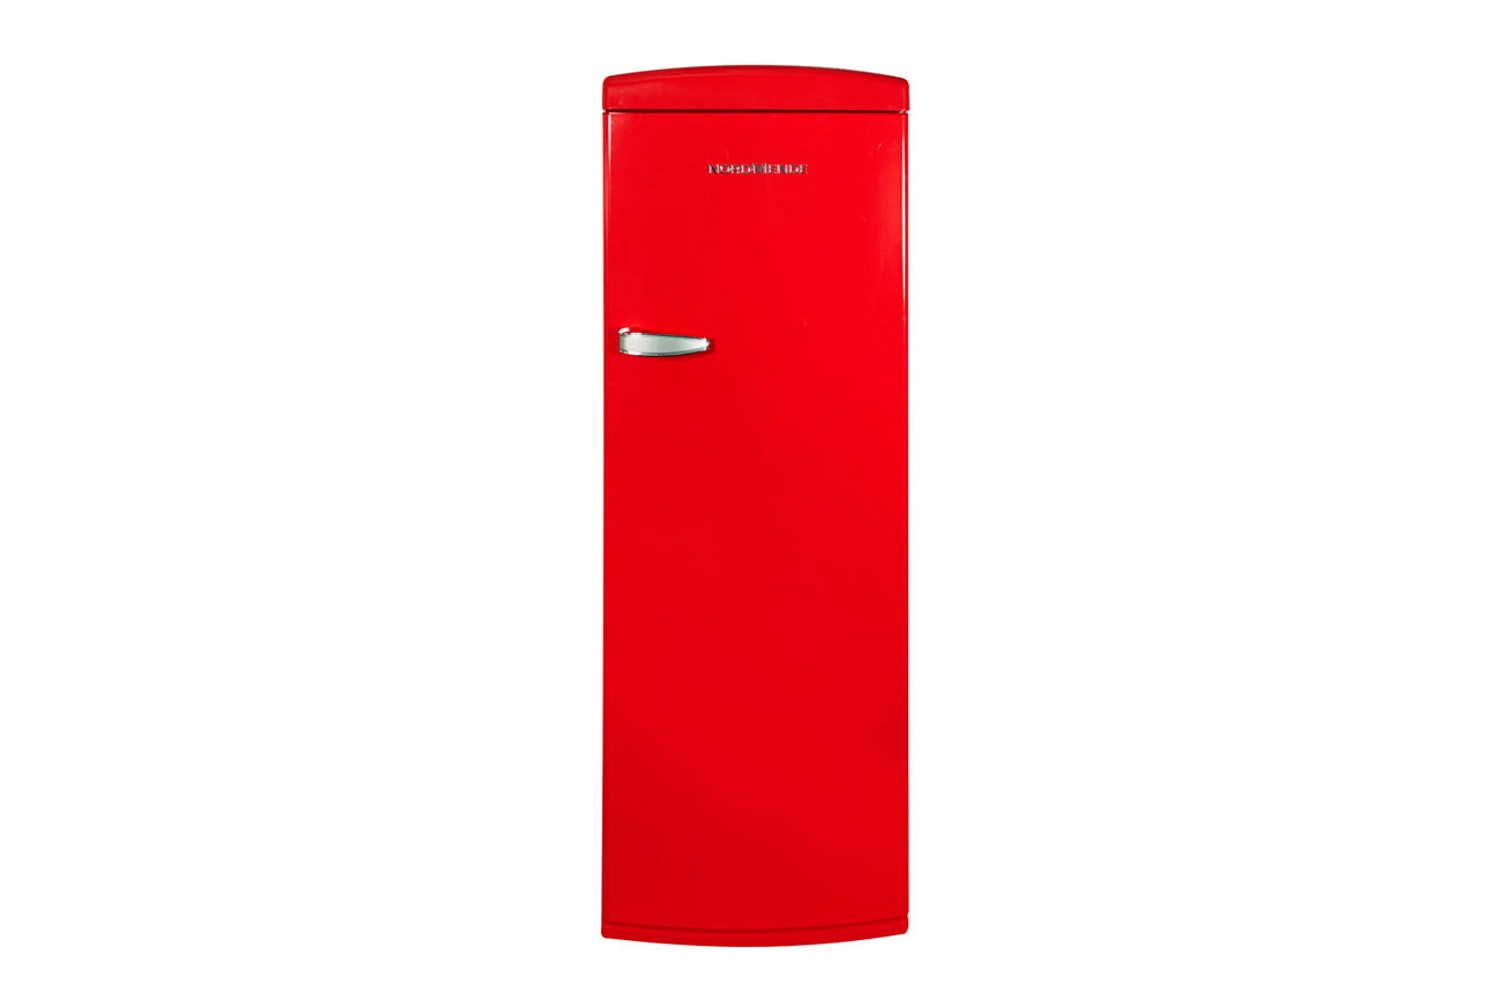 Nordmende Freestanding Fridge Red | RET341RA+